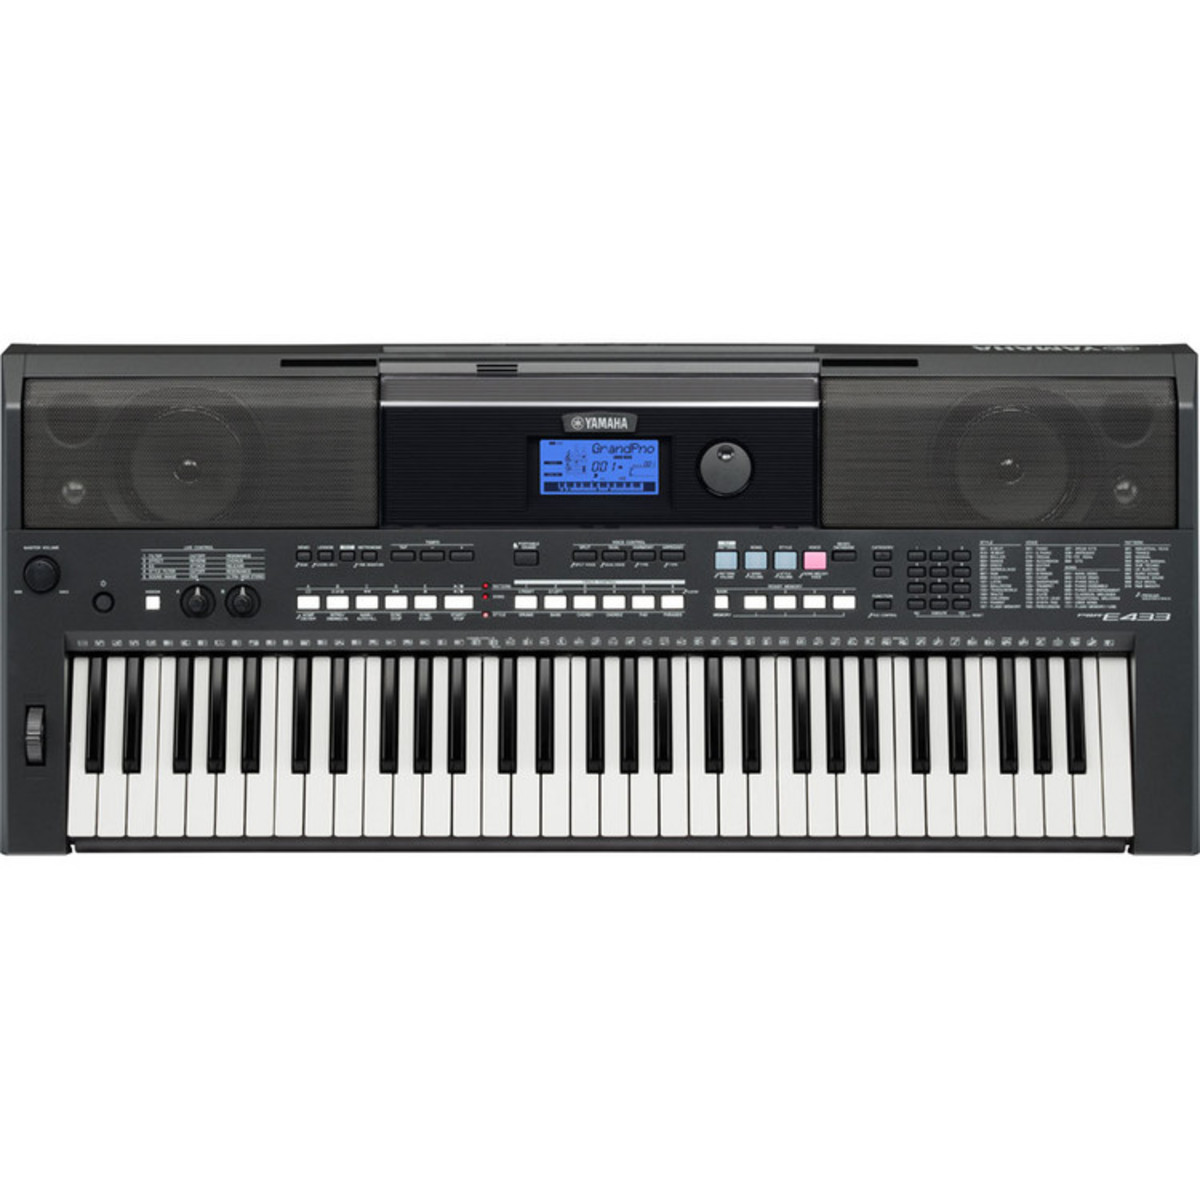 Yamaha psr e433 portable keyboard ex demo at for Yamaha piano keyboard models